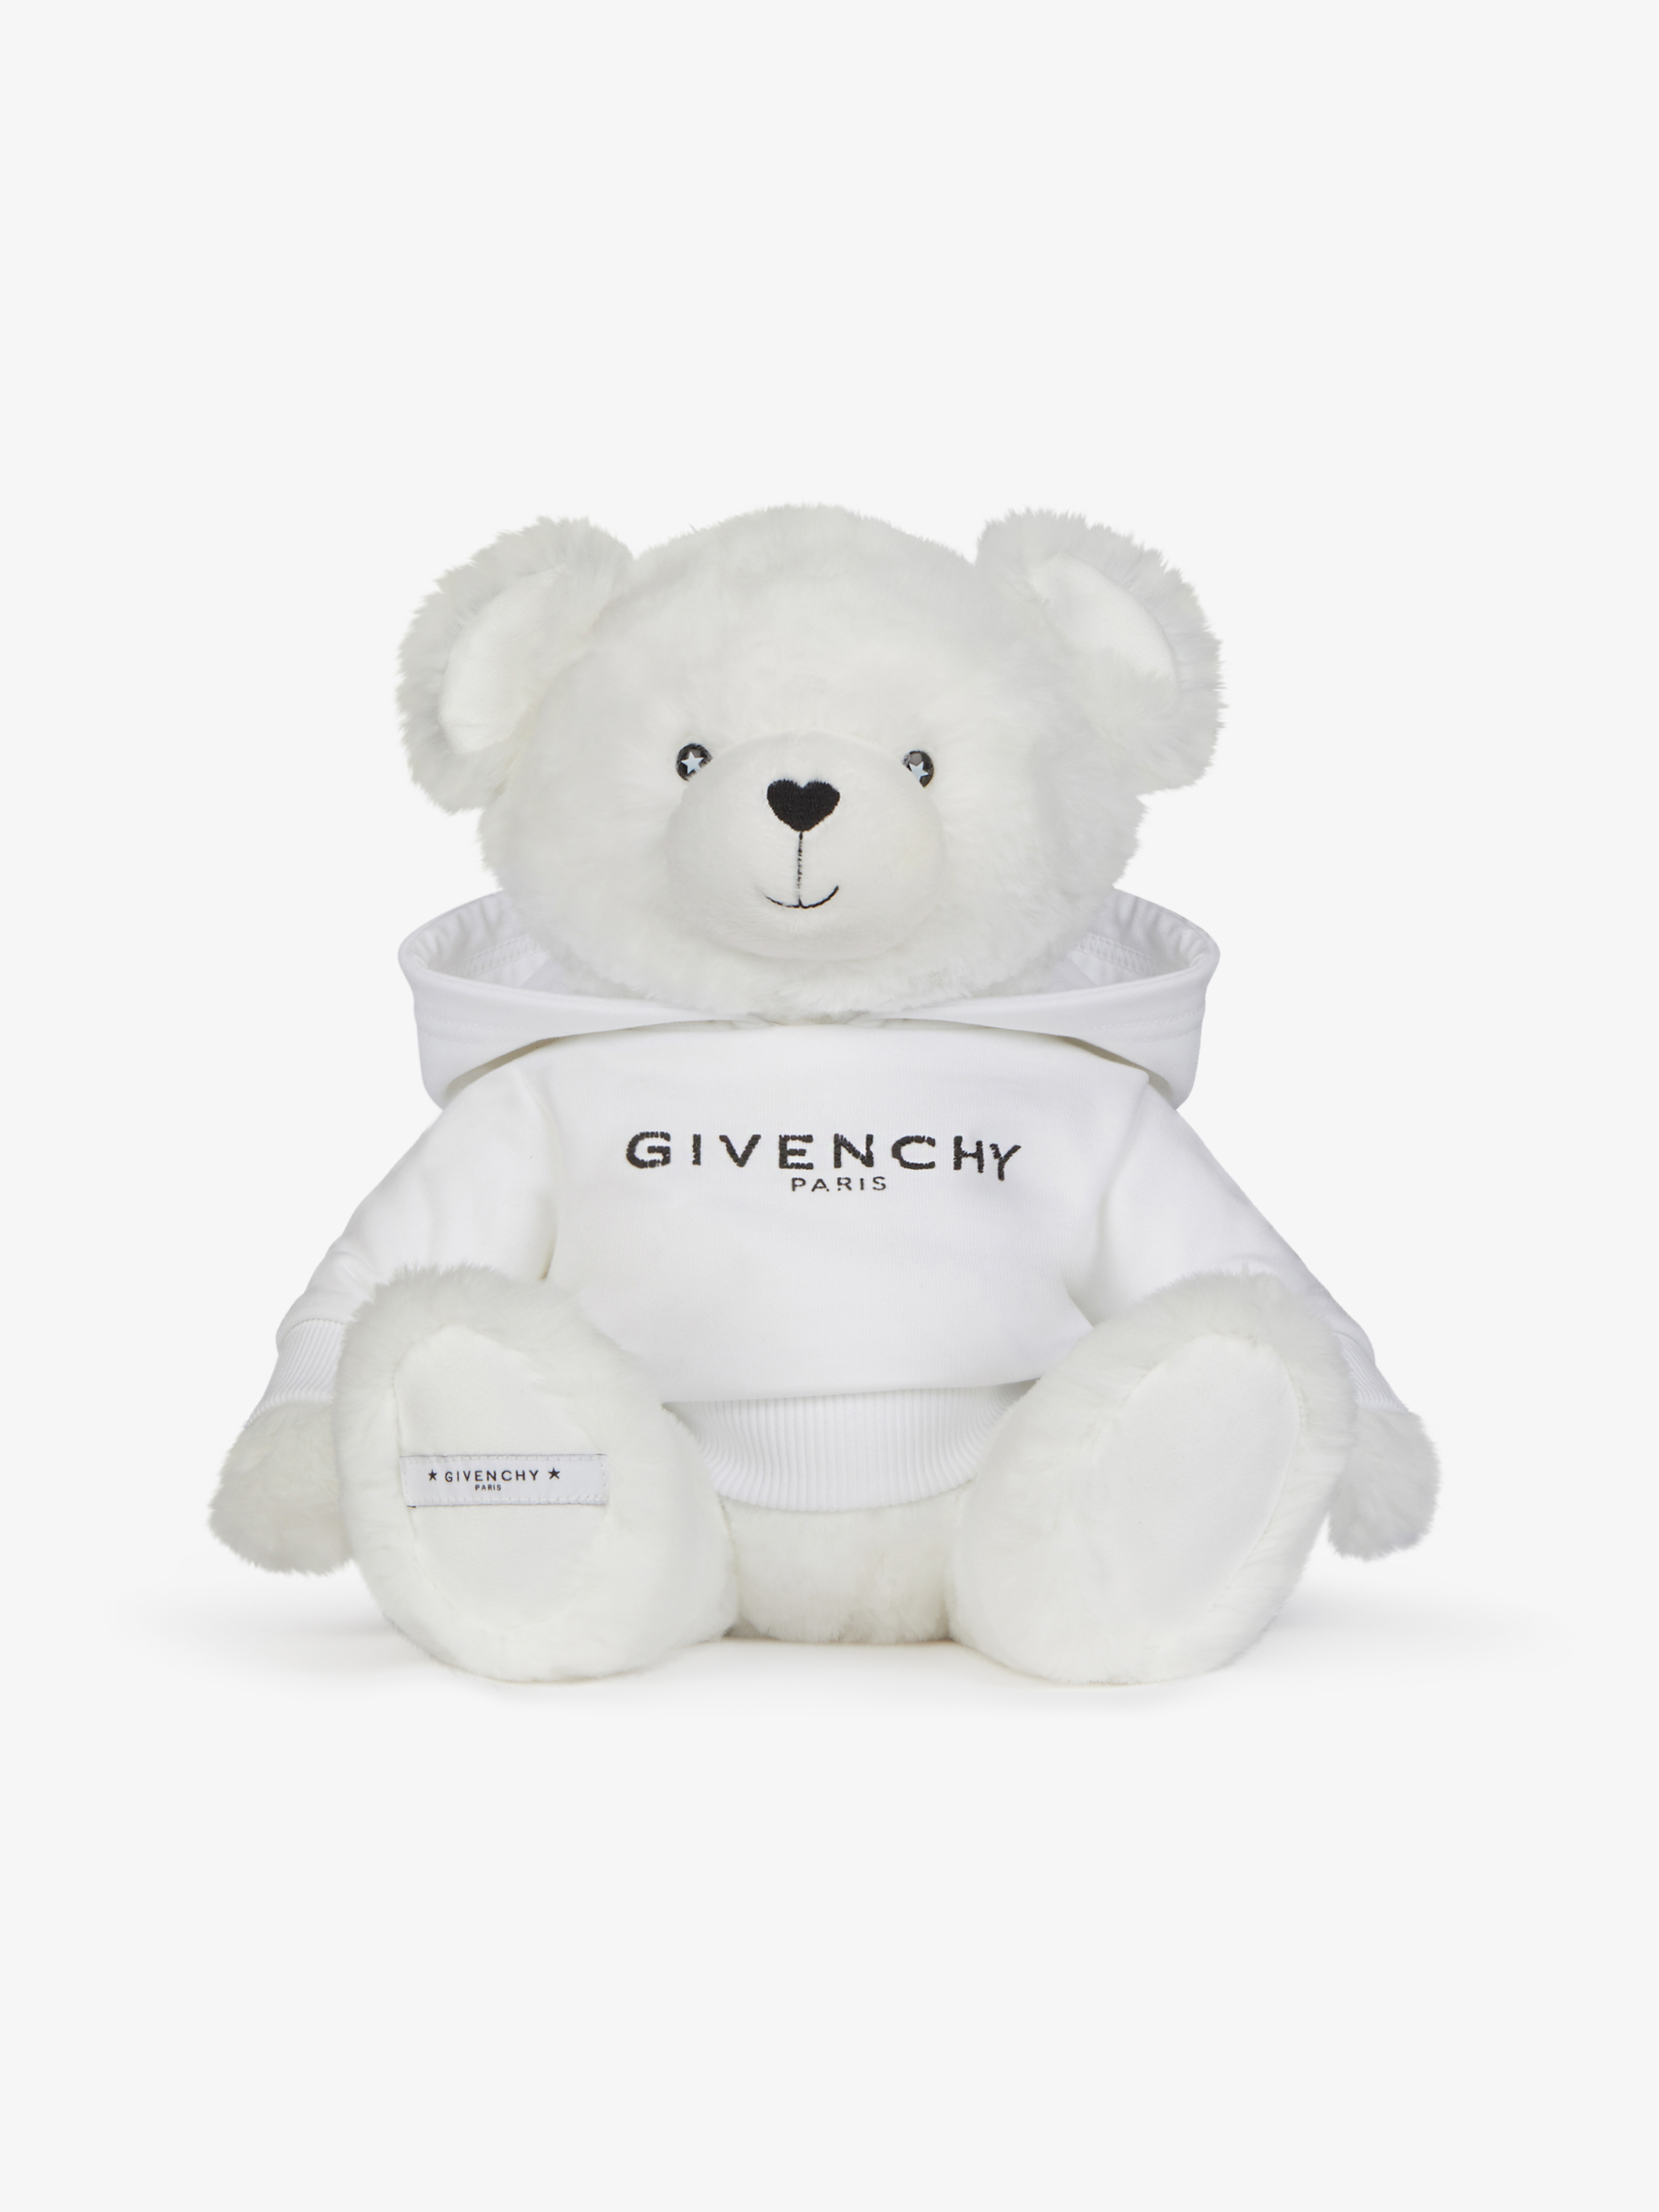 GIVENCHY PARIS Teddy bear